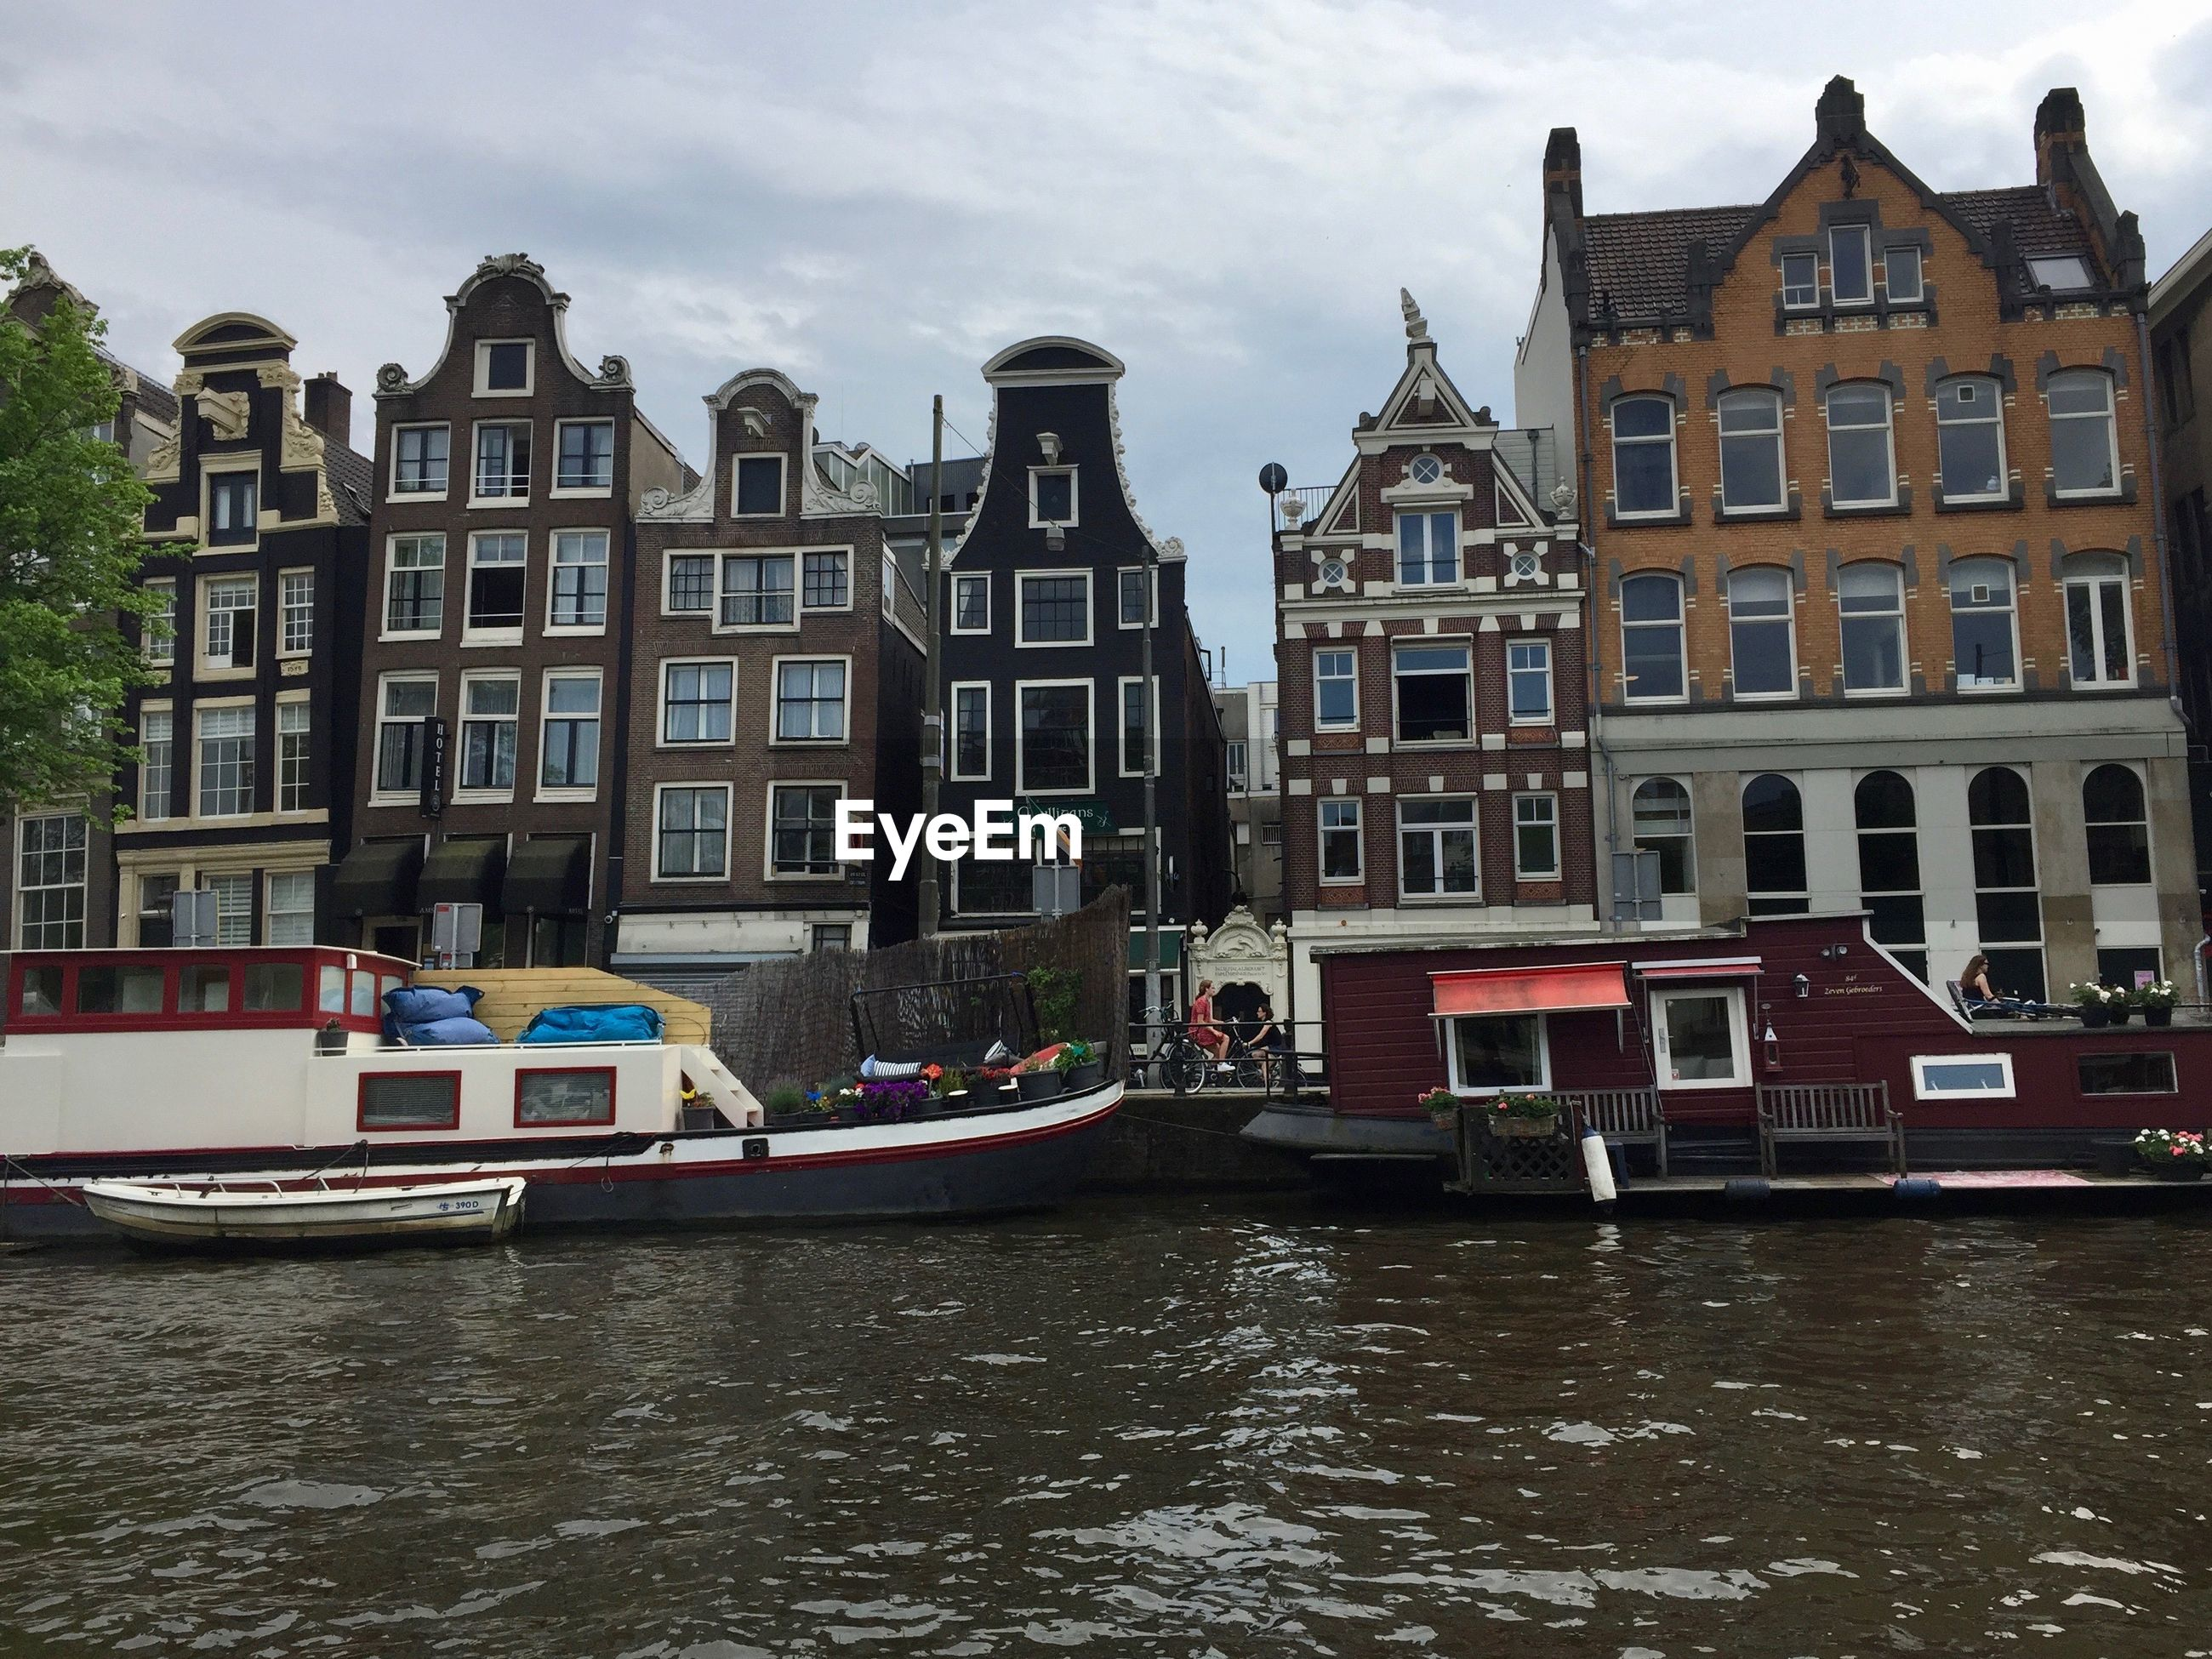 BOATS IN CANAL BY BUILDINGS AGAINST SKY